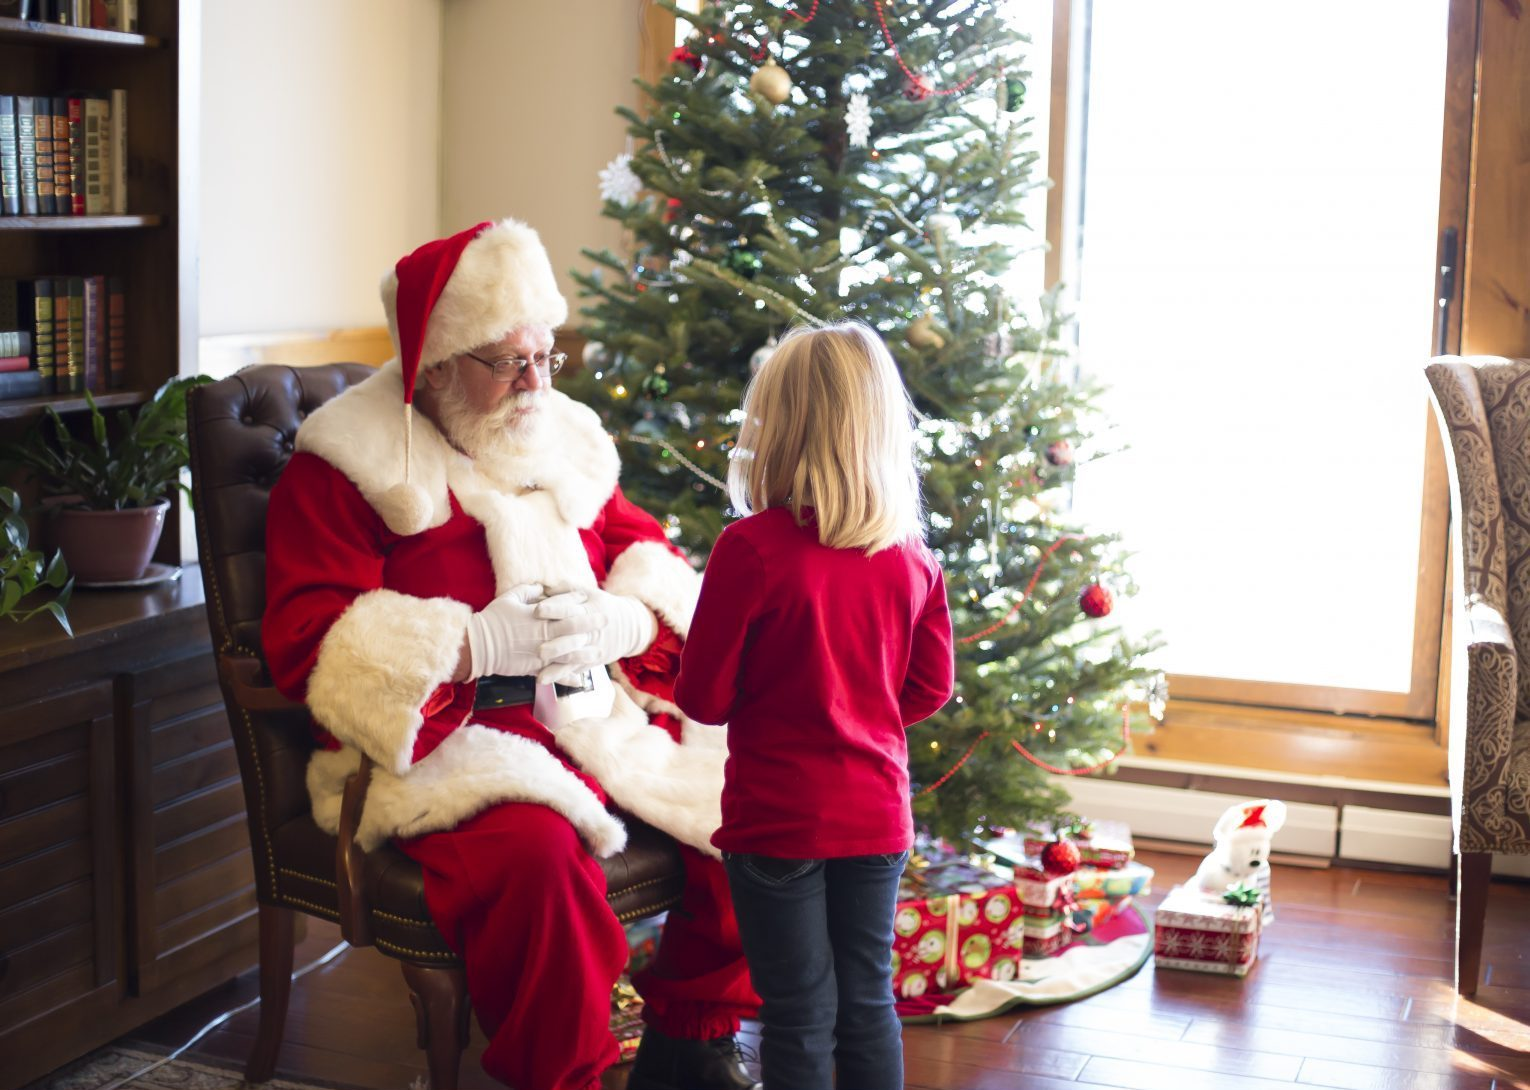 Santa next to a Christmas tree talking to a little girl